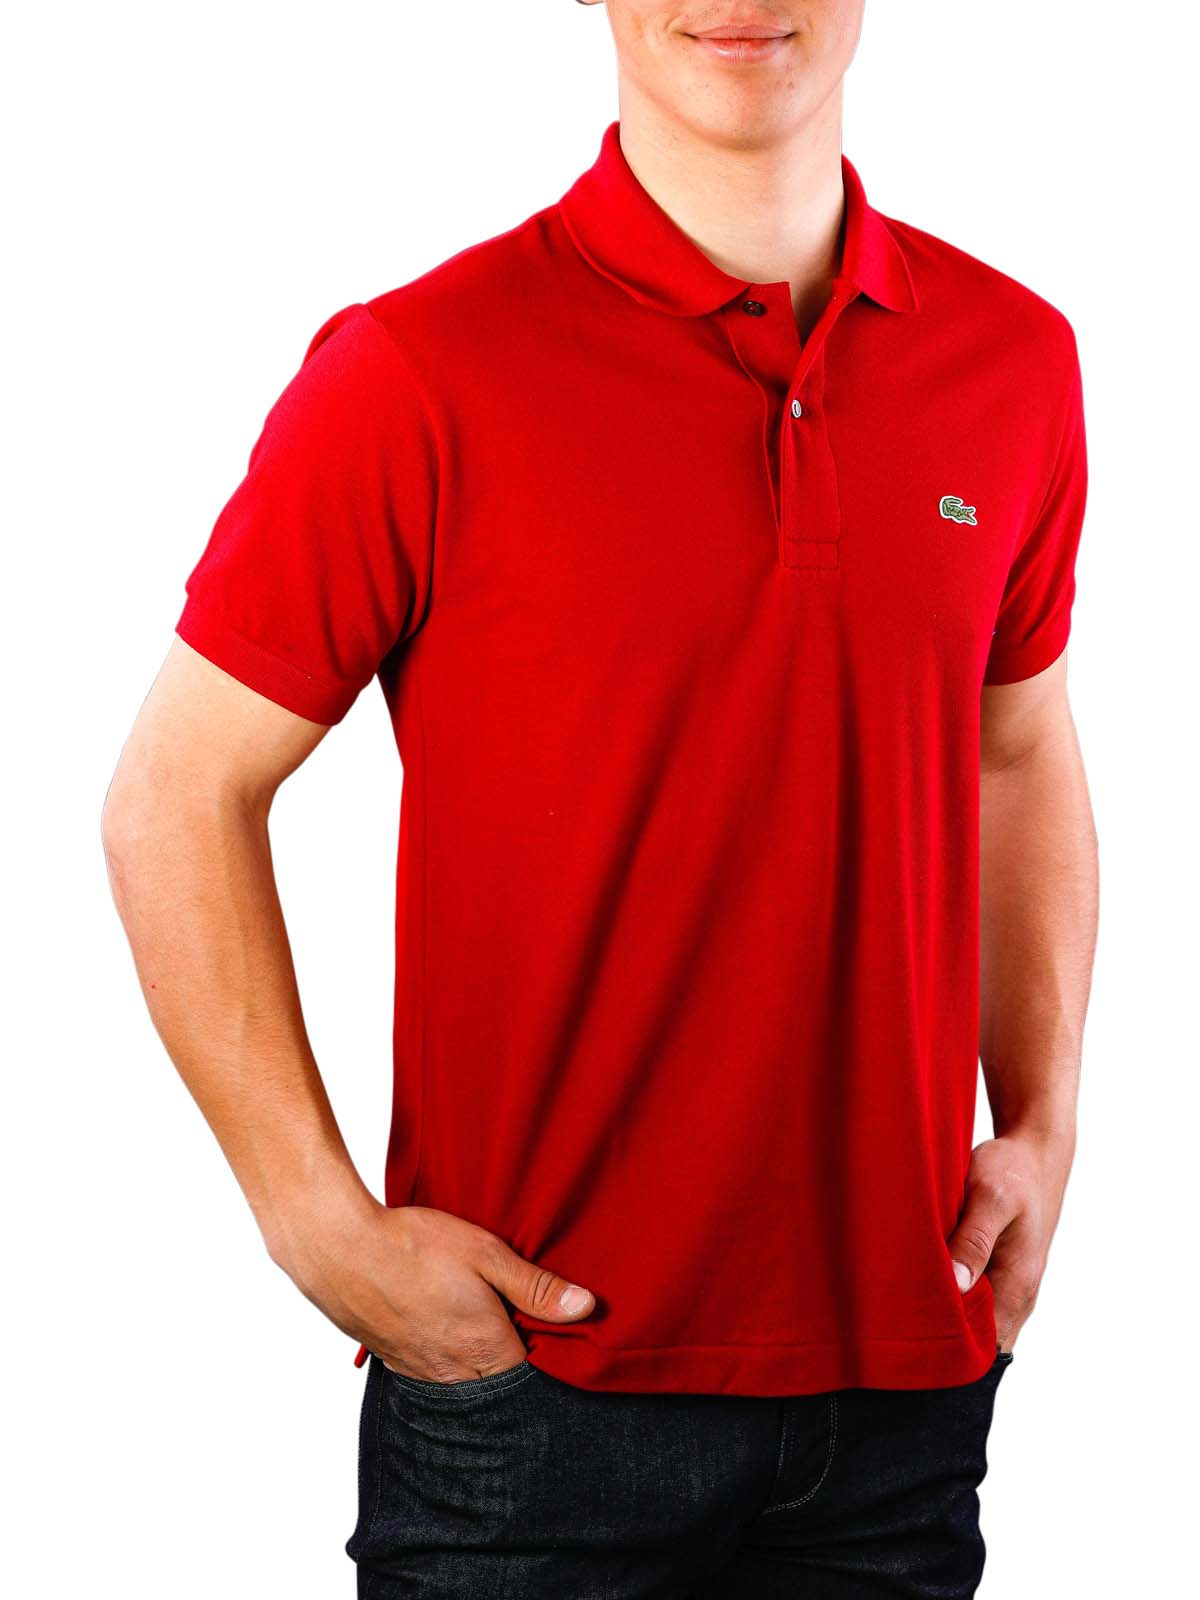 detailed pictures b9b06 a68cf McJeans.ch - Fast Delivery | Lacoste Polo Shirt Short Sleeves bordeaux |  Free Shipping - Free Returns